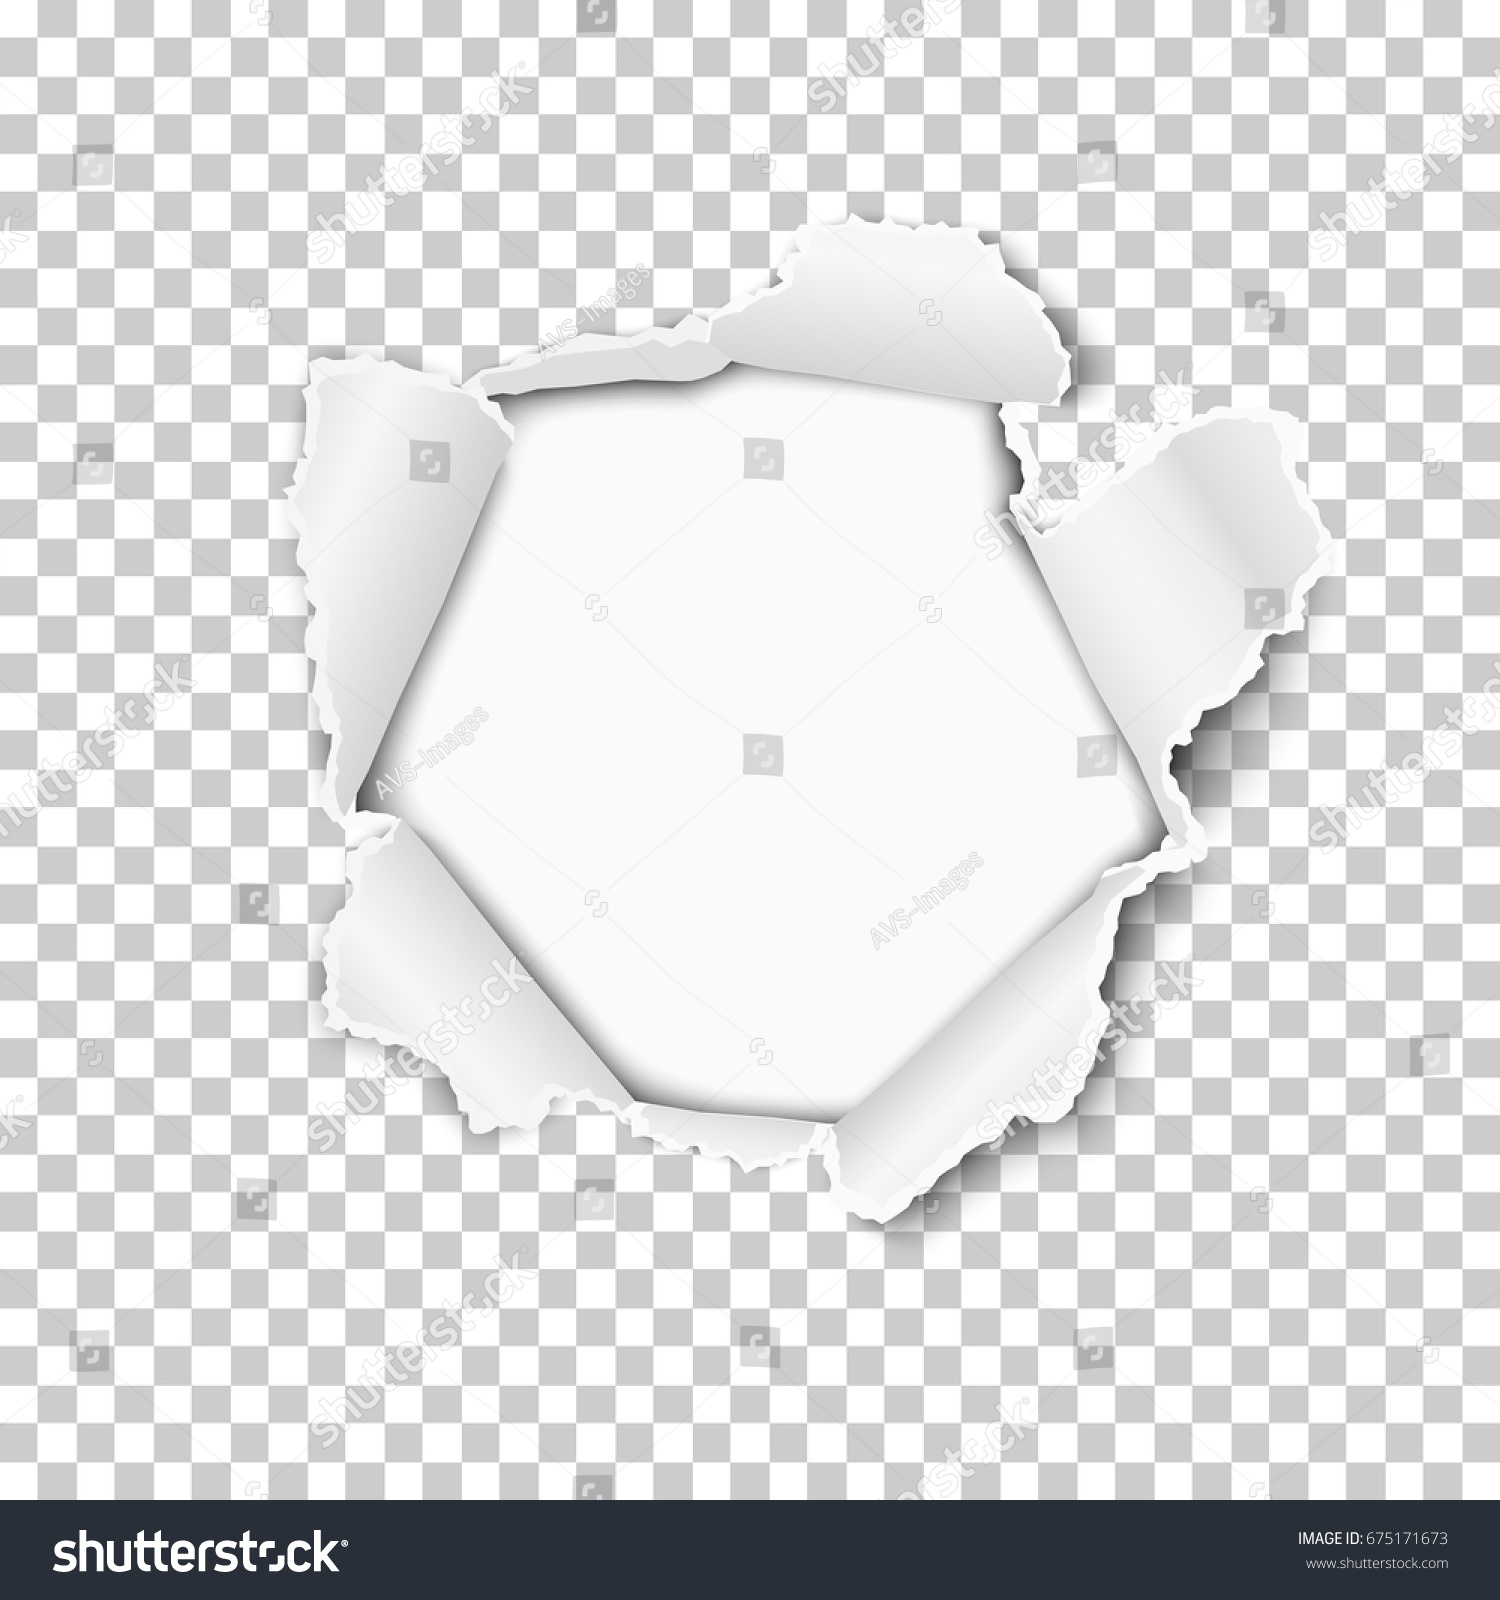 torn hole sheet transparent paper white stock vector (royalty free